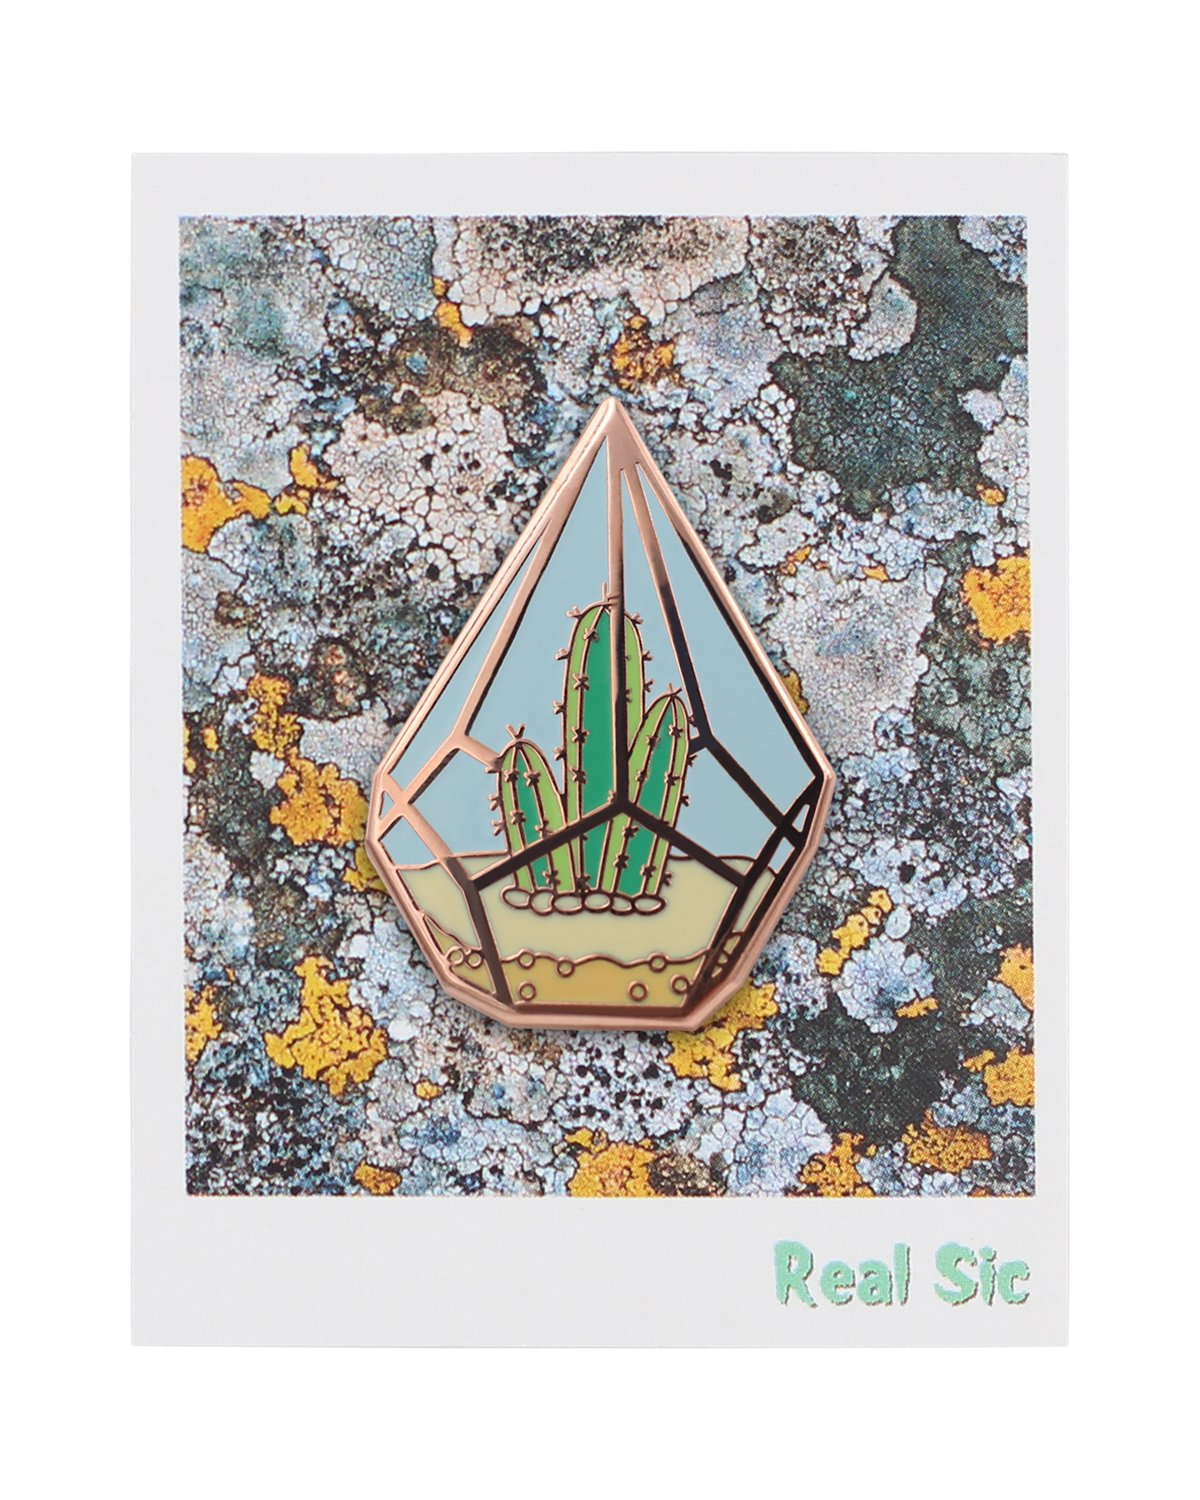 Real Sic Cactus Enamel Pin by Cute Cactus in Geometric Terrarium Lapel Pin - Premium Unisex Collection by Real Sic (Image #6)